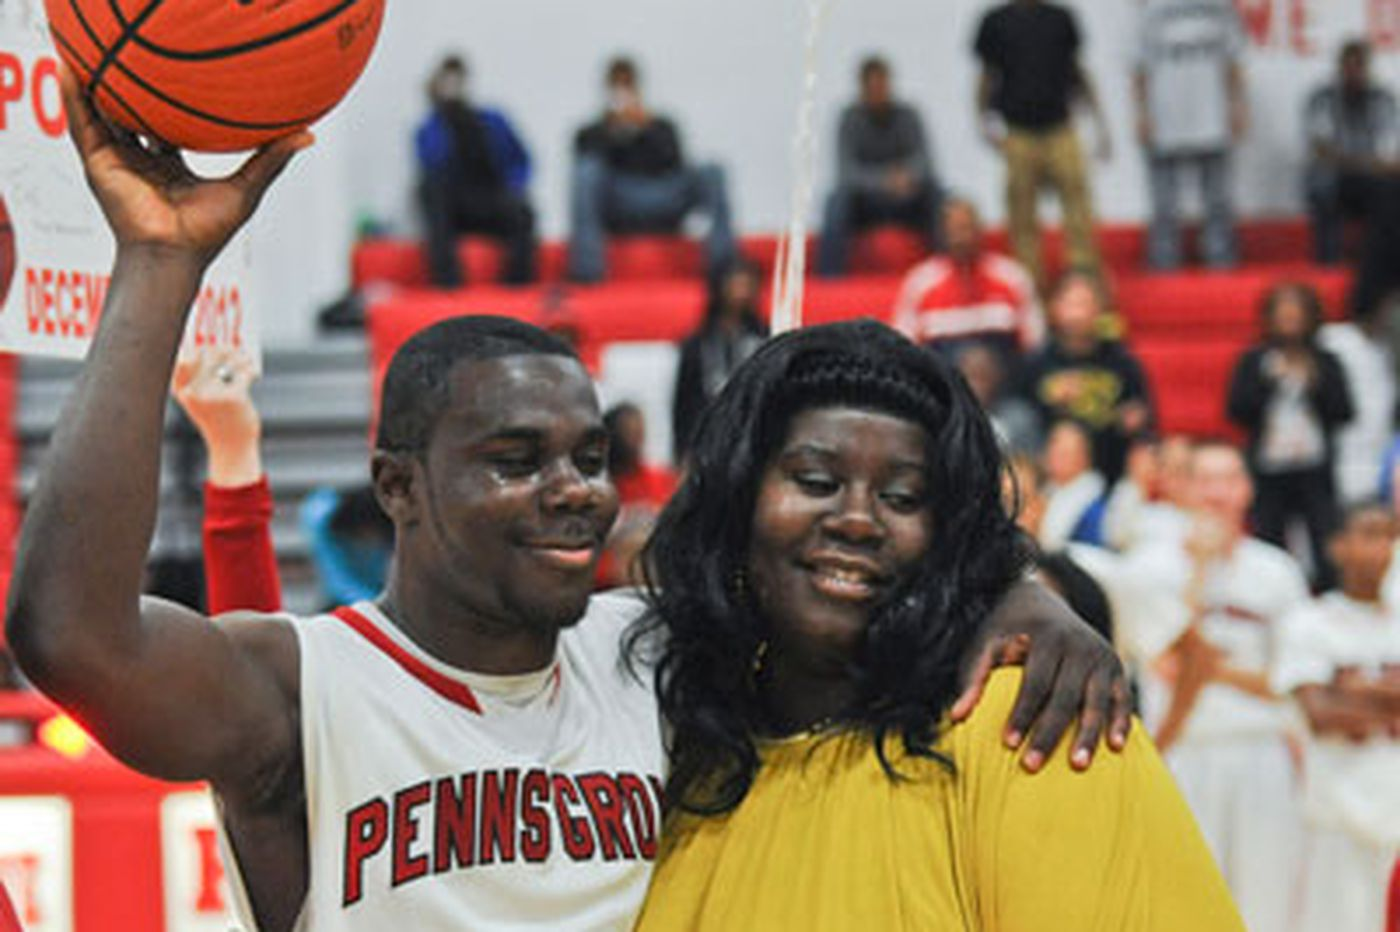 Ge'shawn Davis scores 1,000th point in Penns Grove win